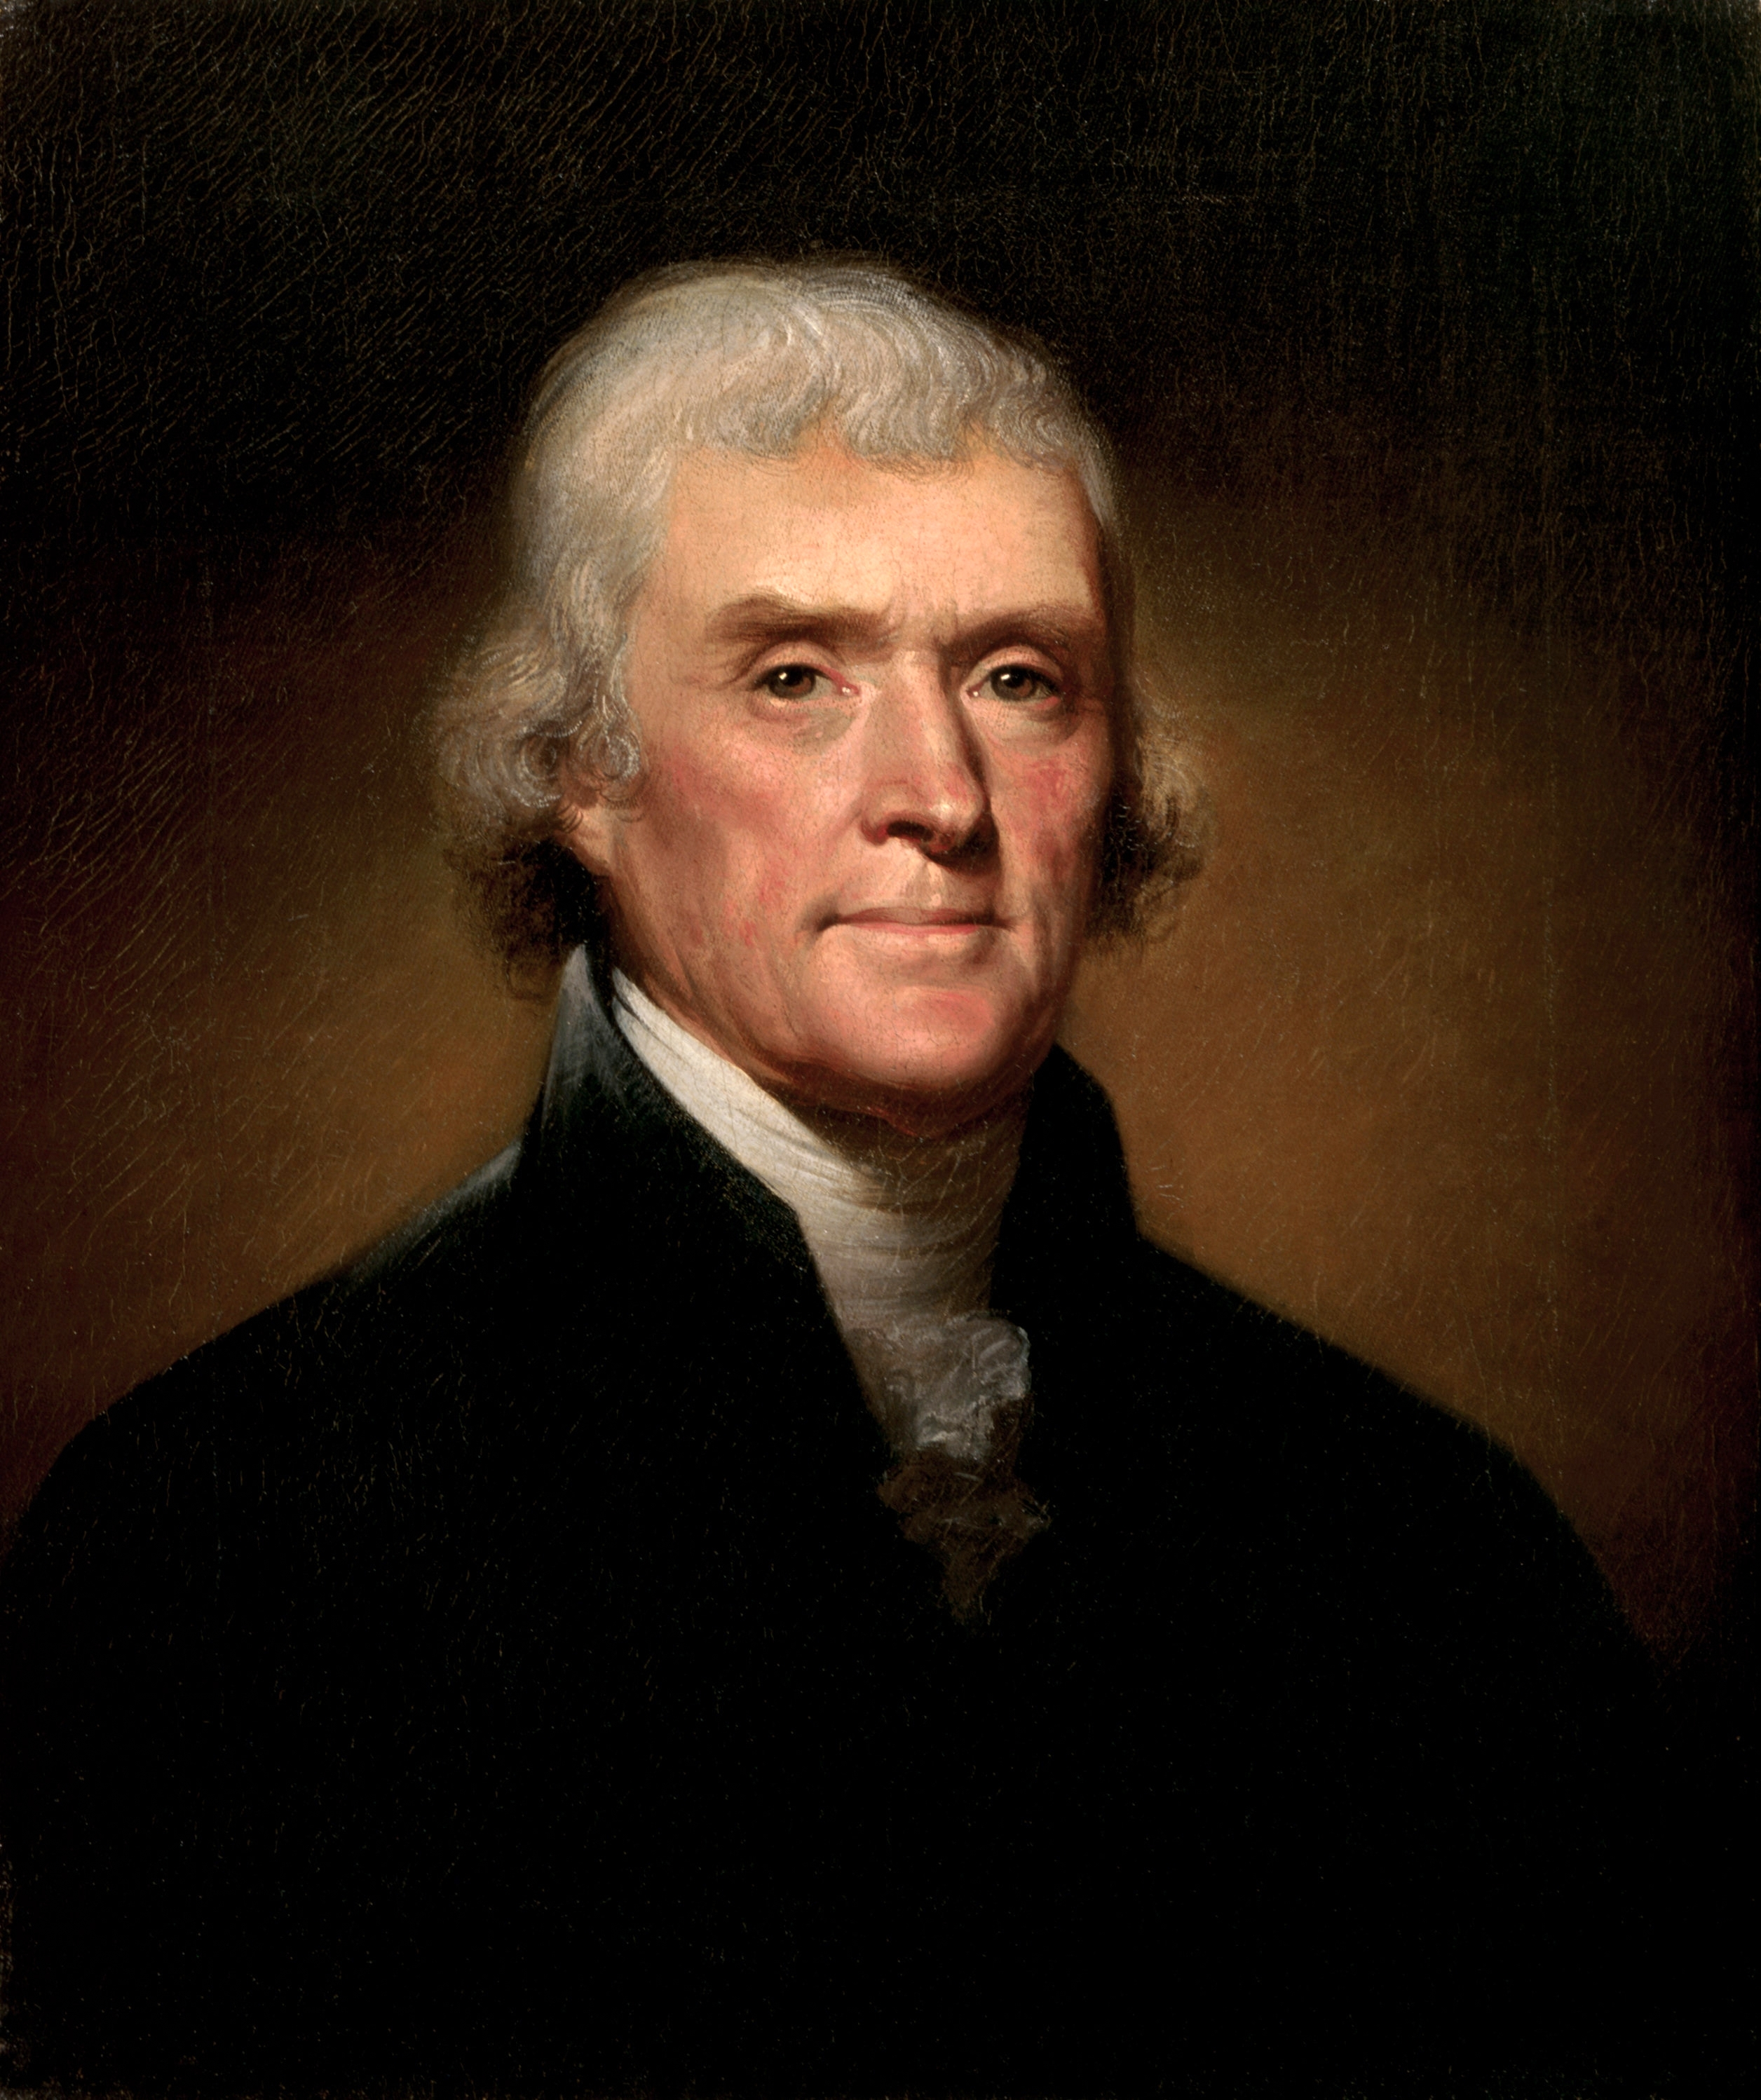 Thomas Jefferson Portrait By Rembrandt Peale